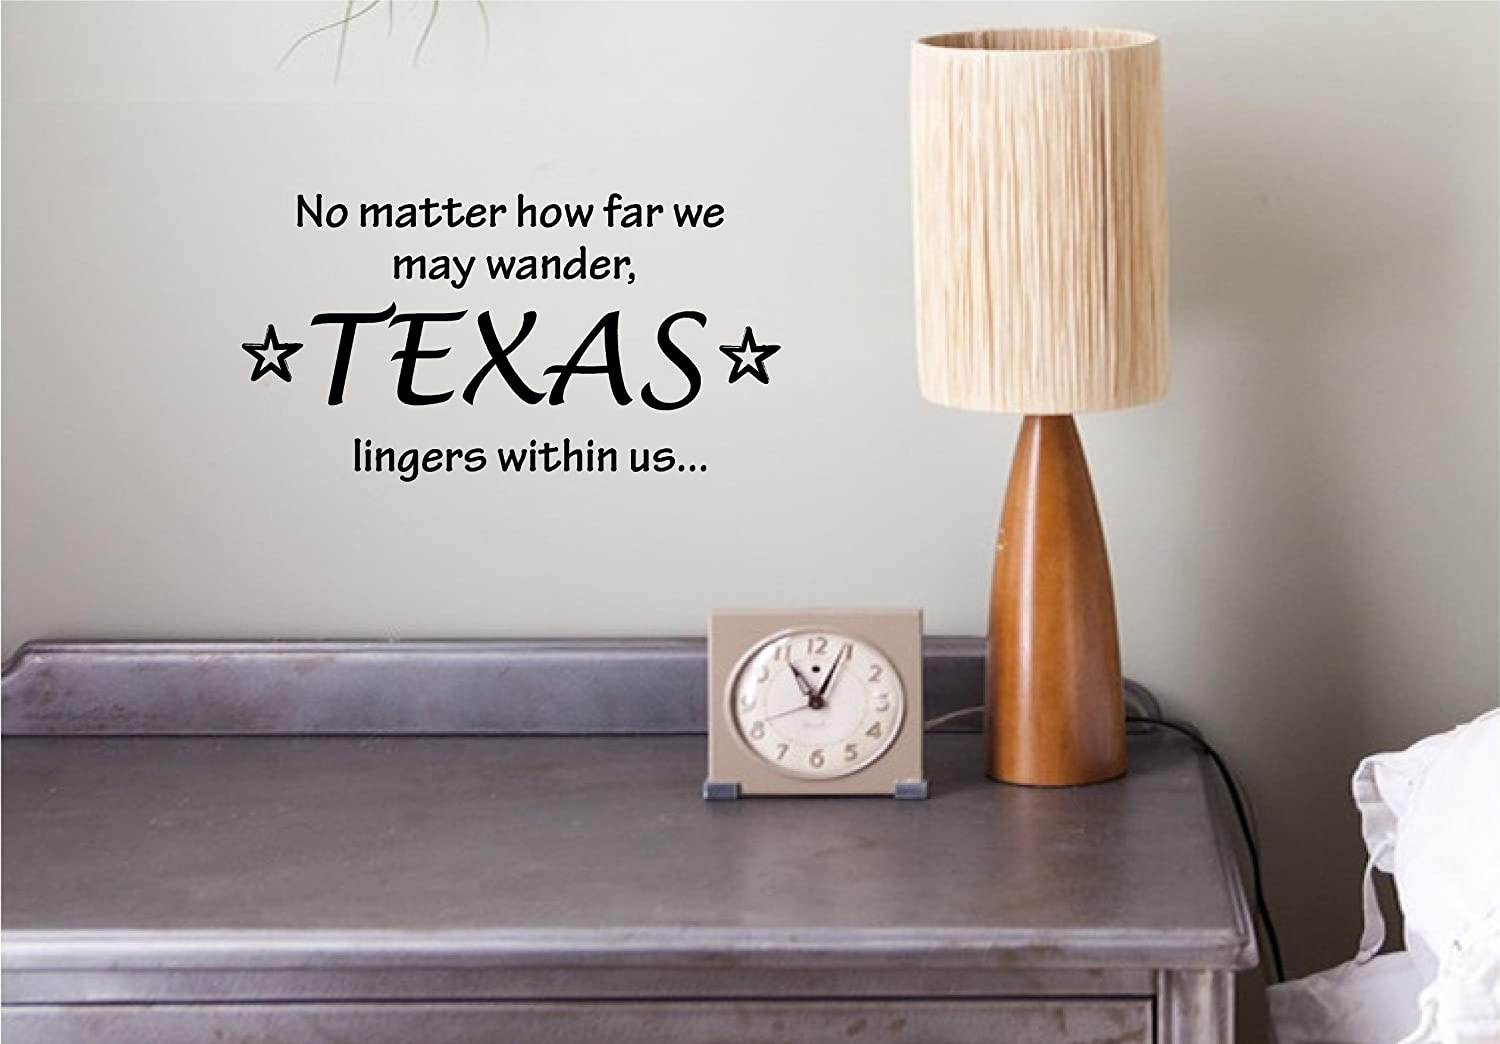 unique ideas wall texas robinsuitesco decoration bedroom wood wooden barn sayings decor